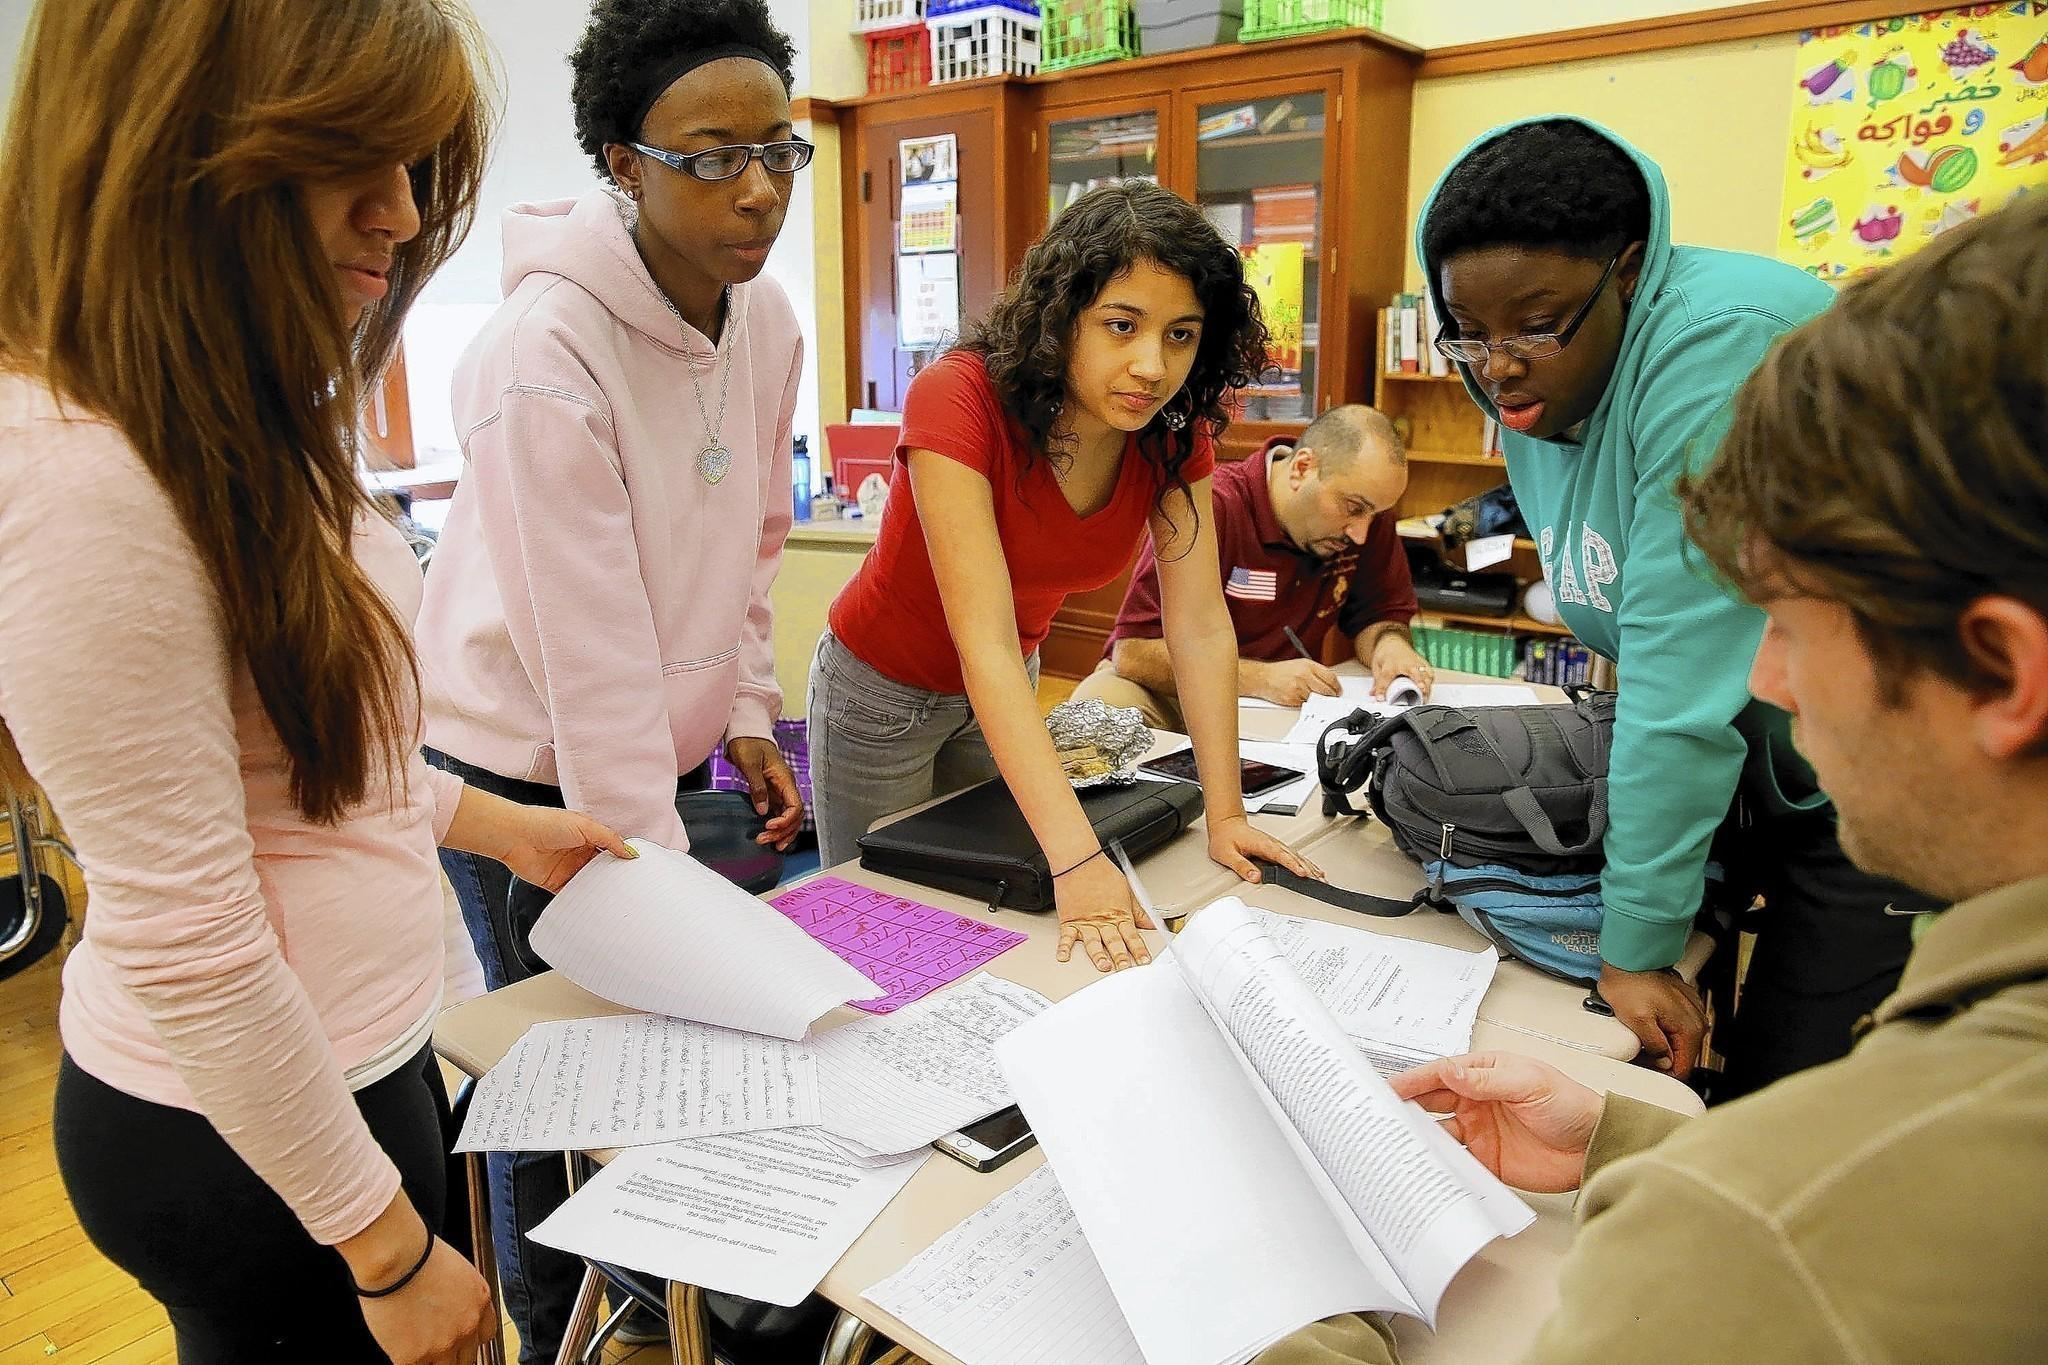 Karina Reyes, 17, from left, LaCharro Hawkins, 18, Brenda Macias, 15, Erin Nwachukwu, 15, and teacher Tyler Blackwell prepare for their debate and trip to Doha, Qatar, after classes at Robert Lindblom Math and Science Academy in Chicago.